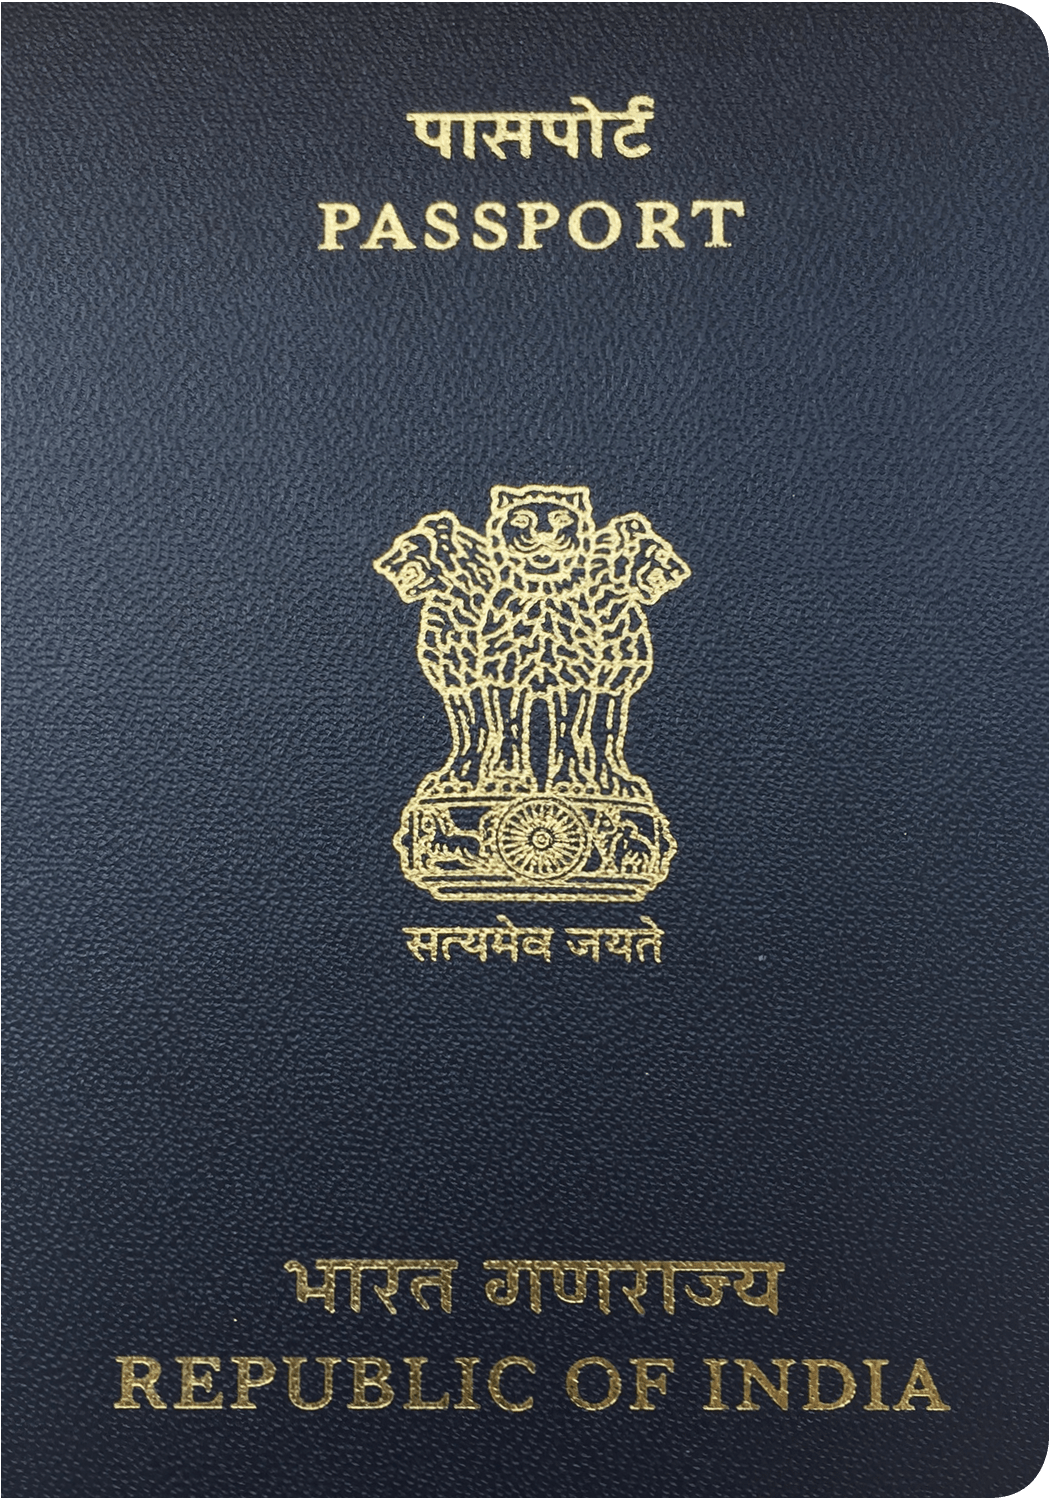 A regular or ordinary Indian passport - Front side